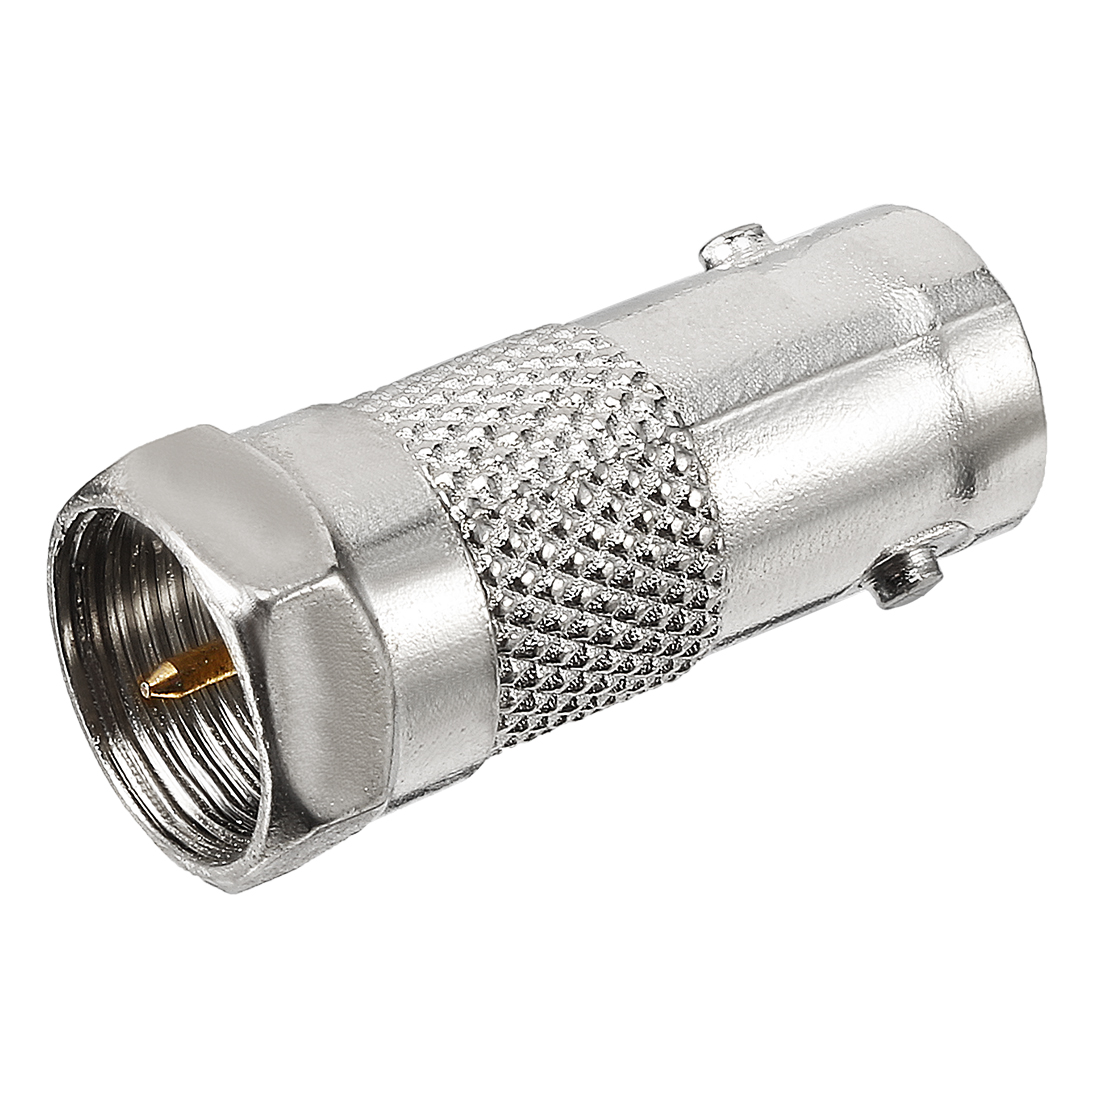 Silver Tone BSP F Male to BNC Female Jack RF Coaxial Adapter Connector Converter